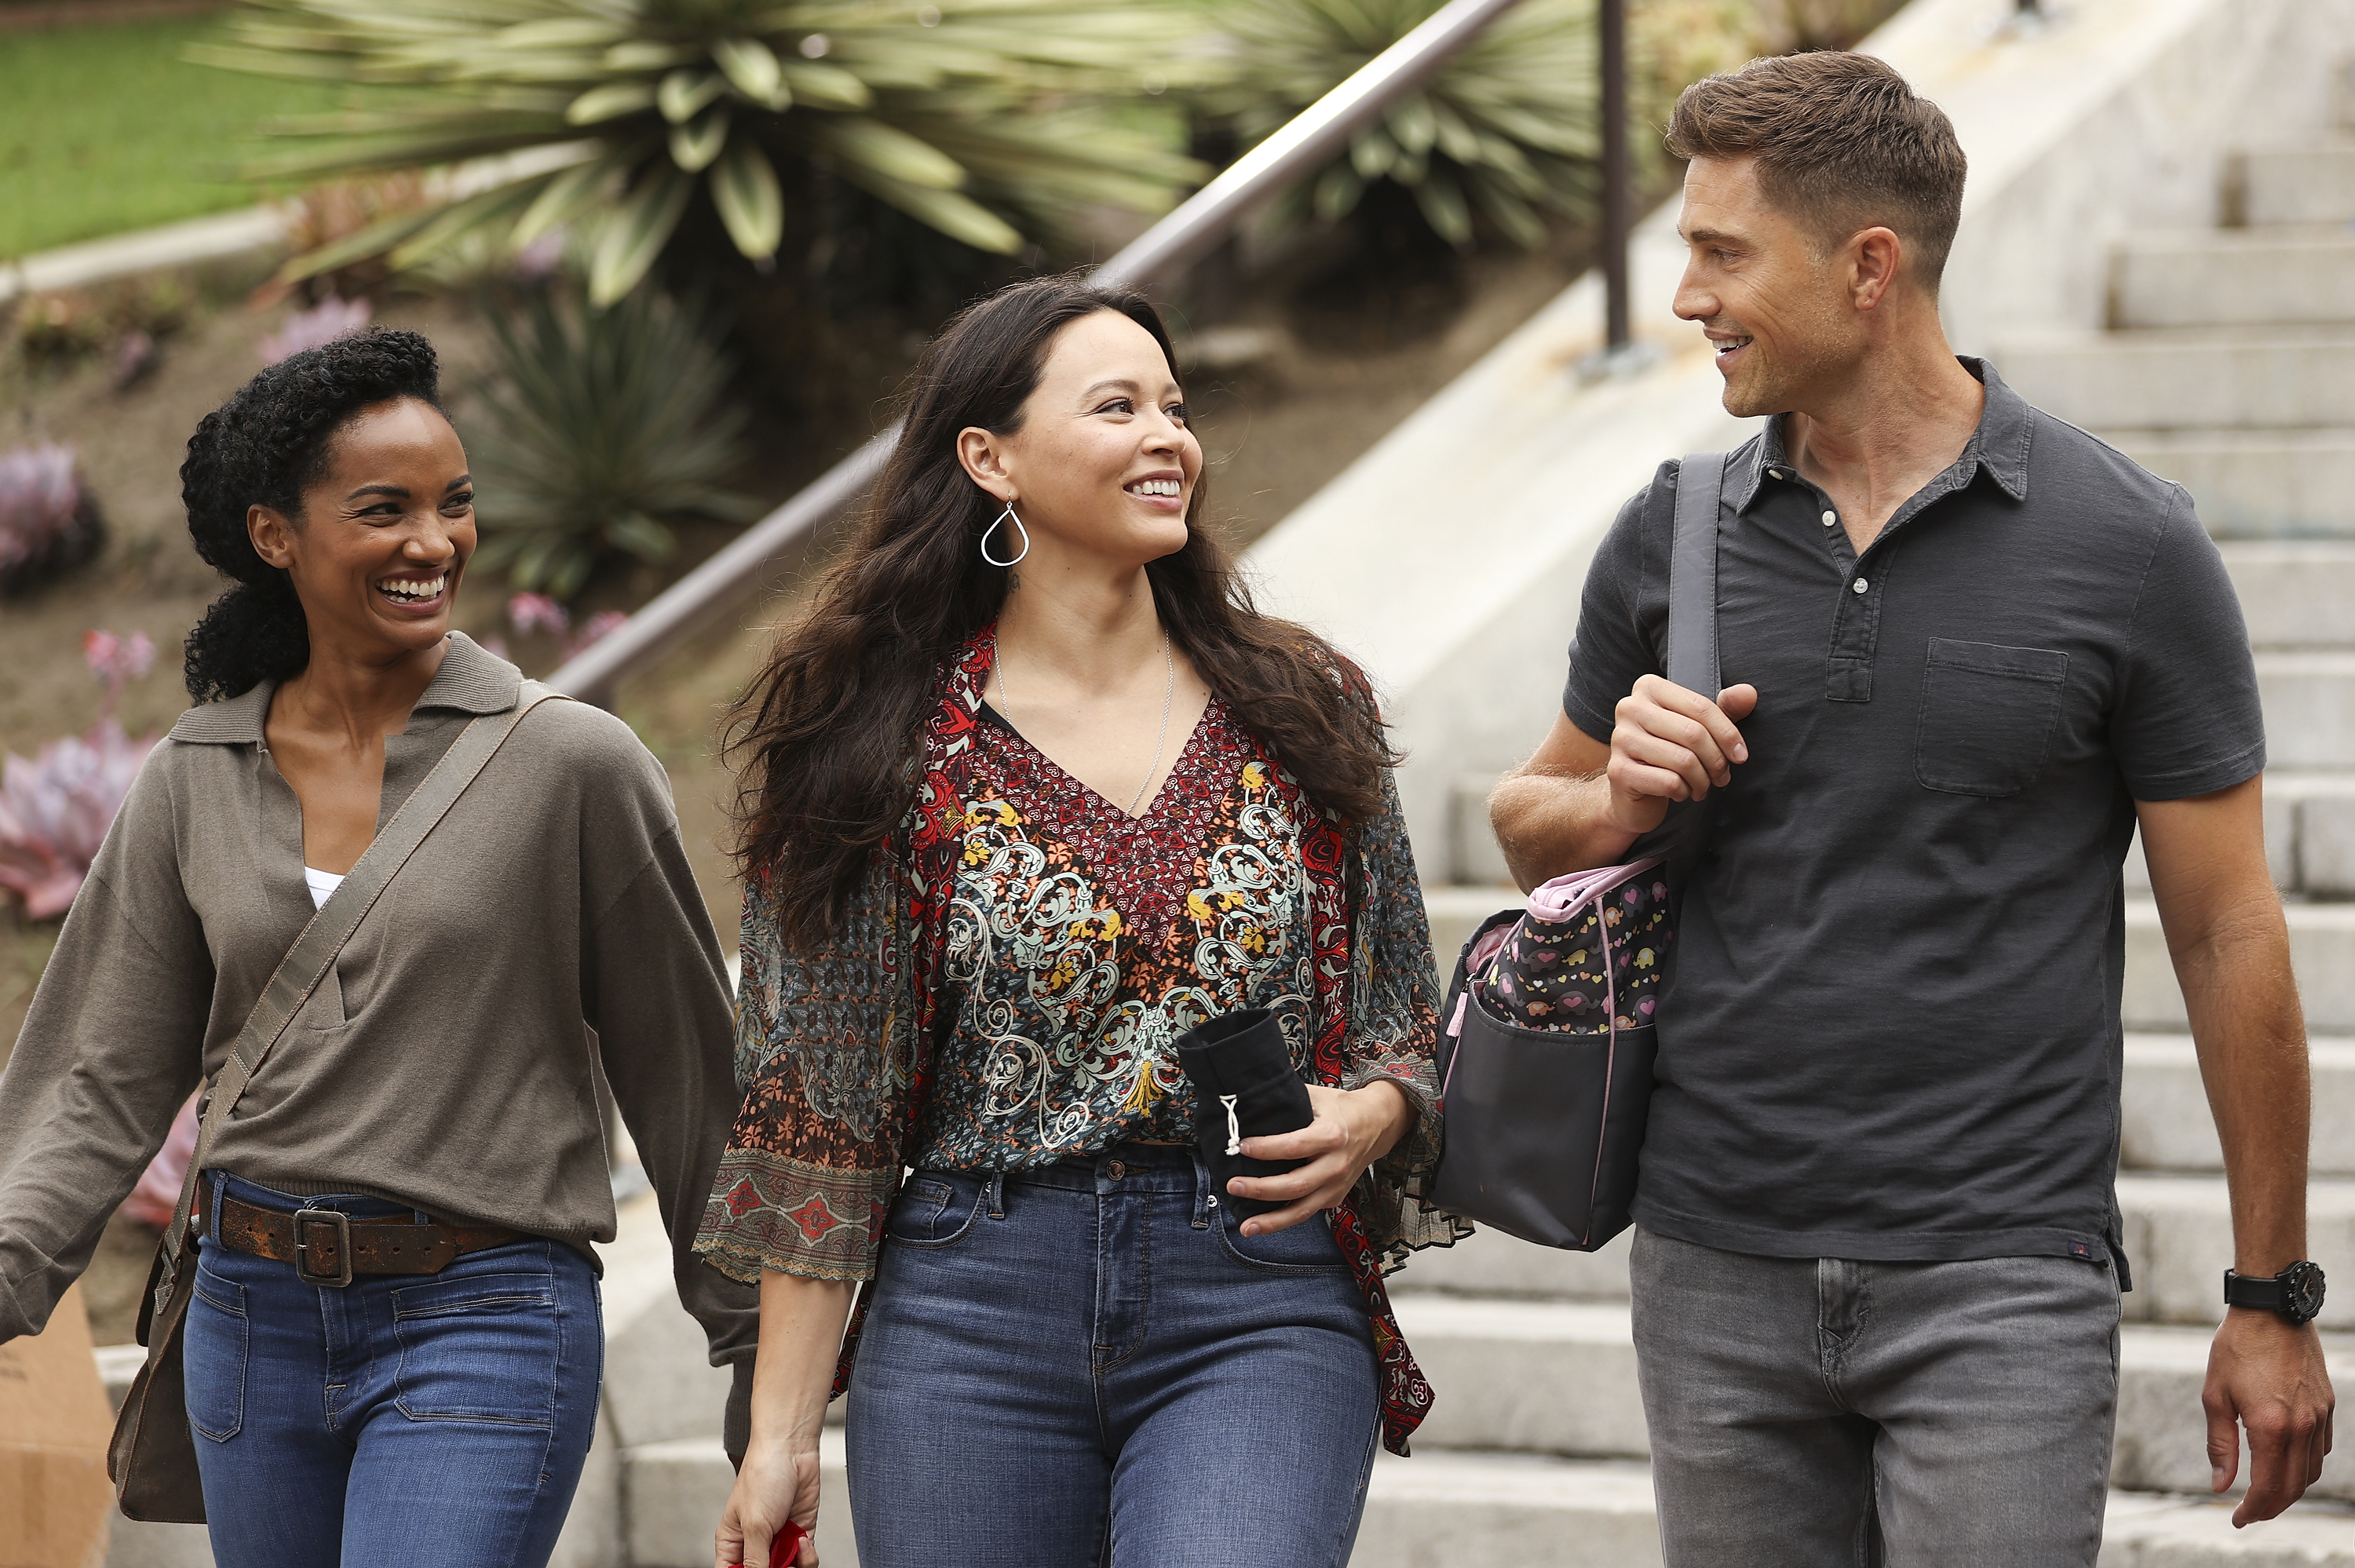 The Rookie 4x02 Review: Five Minutes